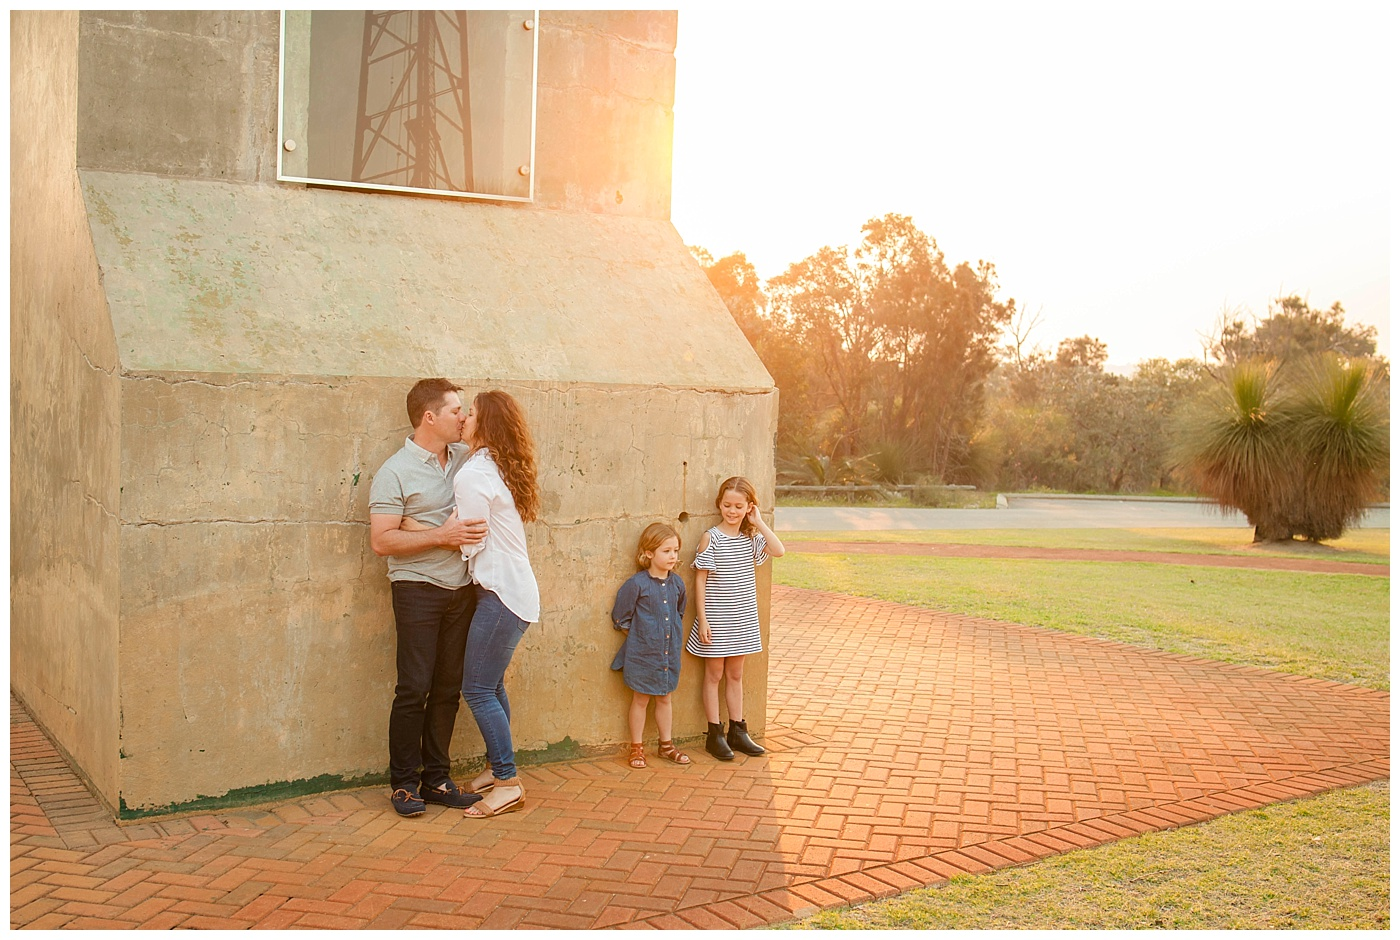 Family Photography at Wireless Hill in Perth.